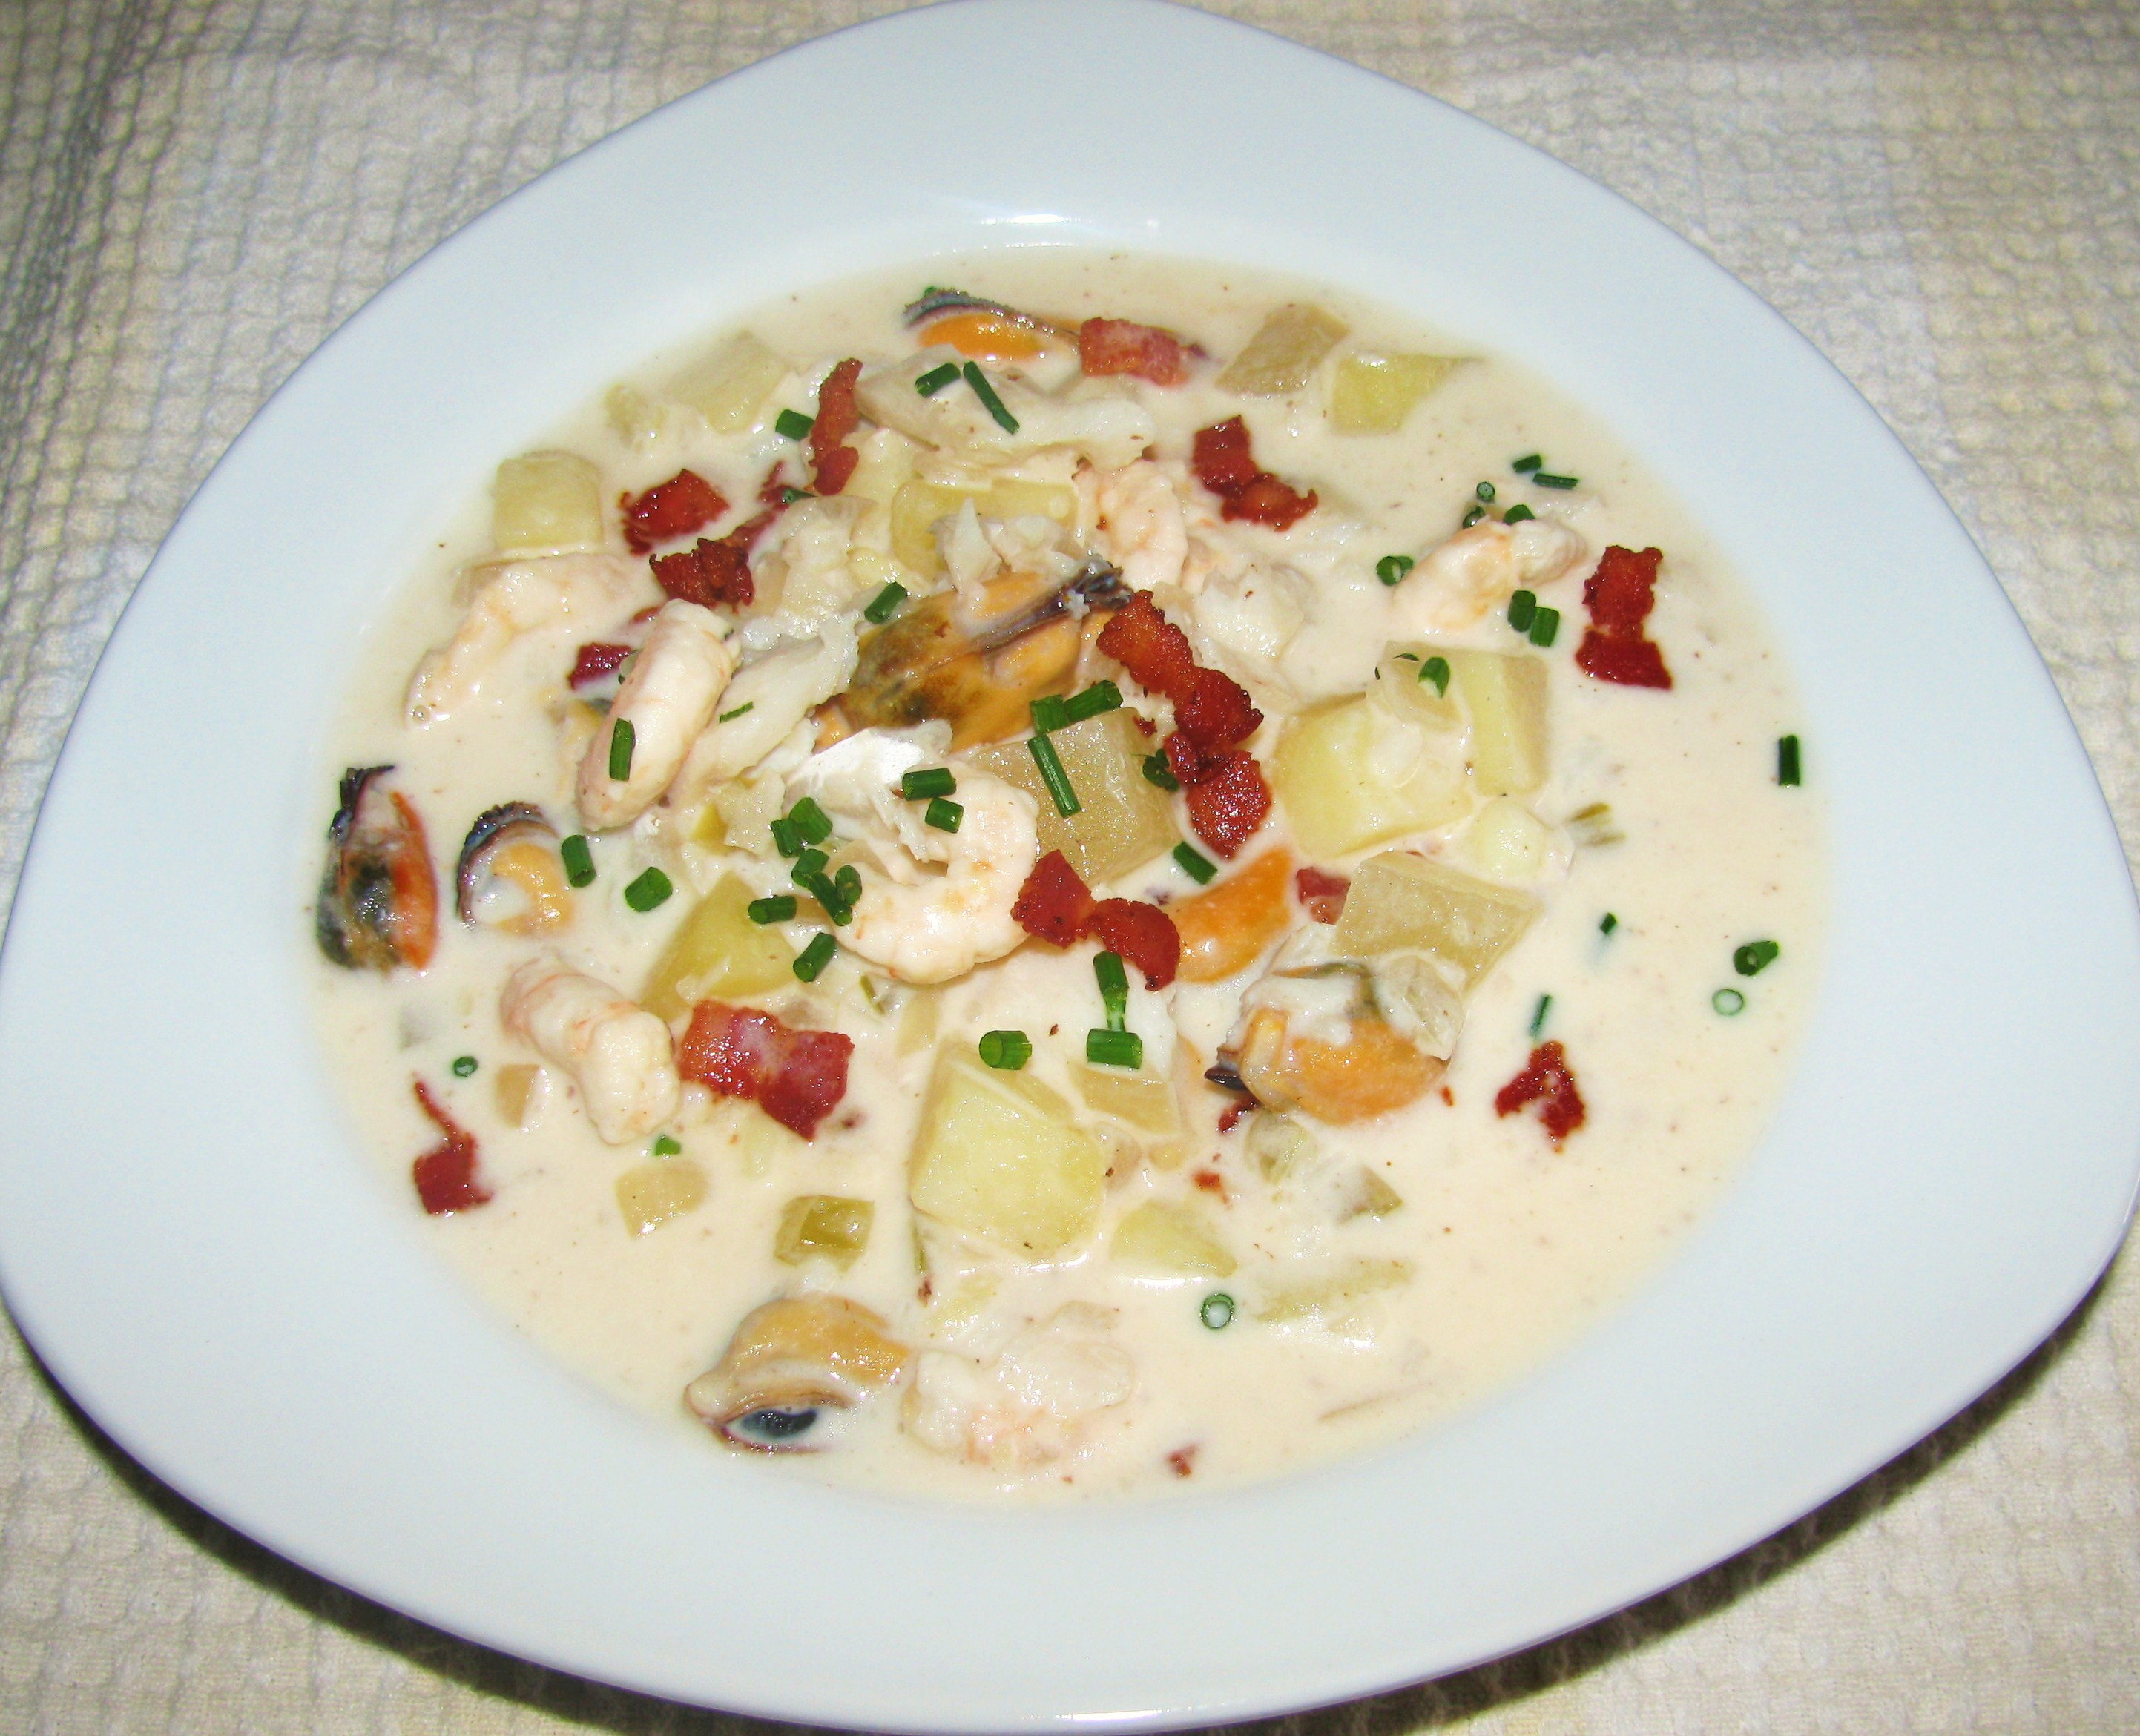 Seafood Chowder is a bit heavy dish that contains over 973 calories